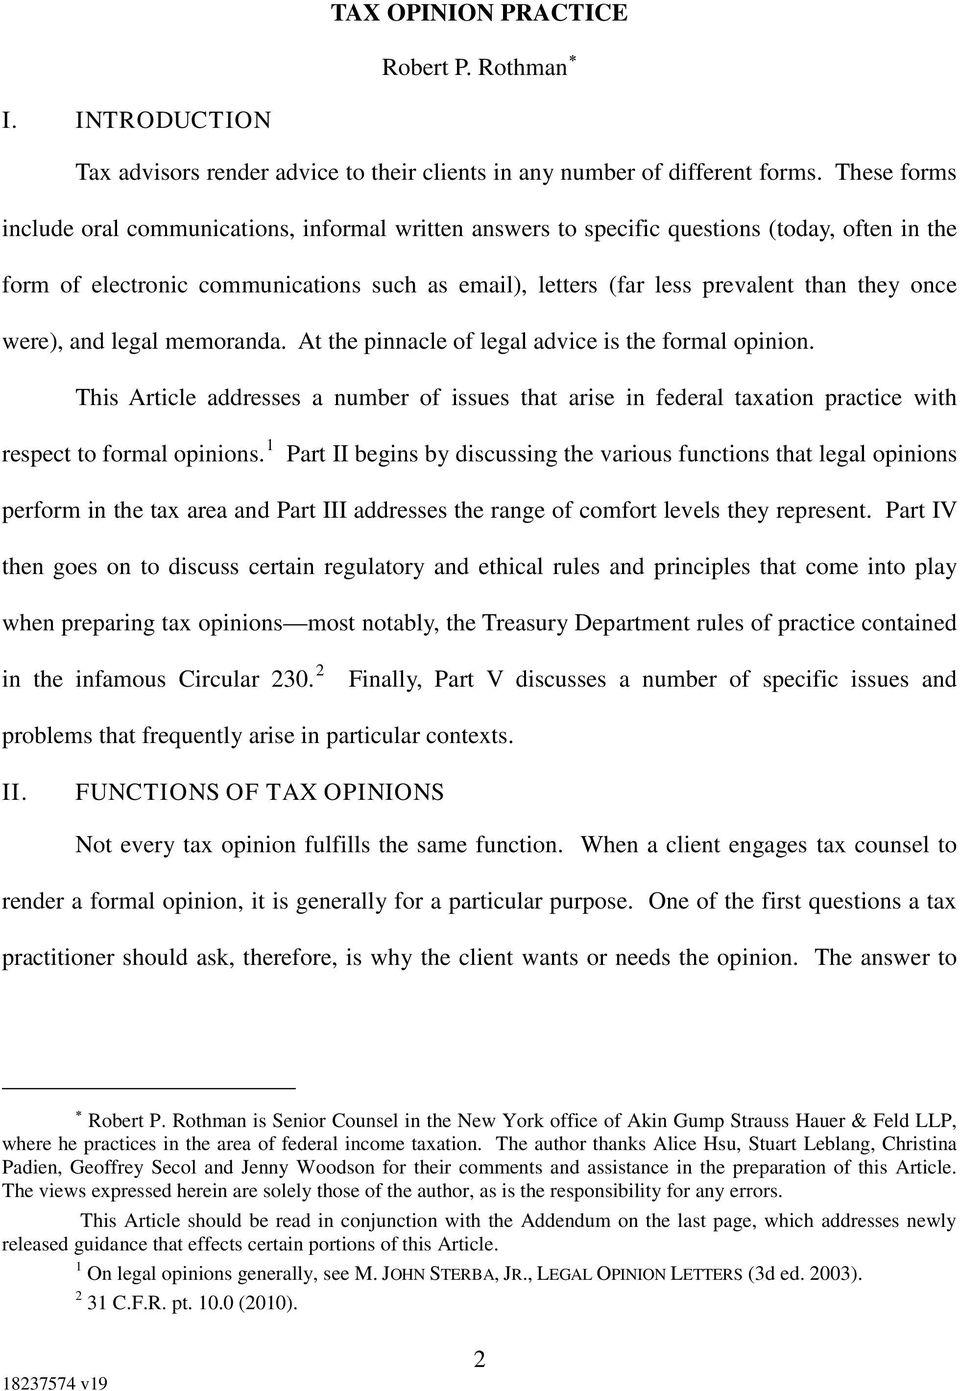 Formal Legal Opinion Letter from docplayer.net